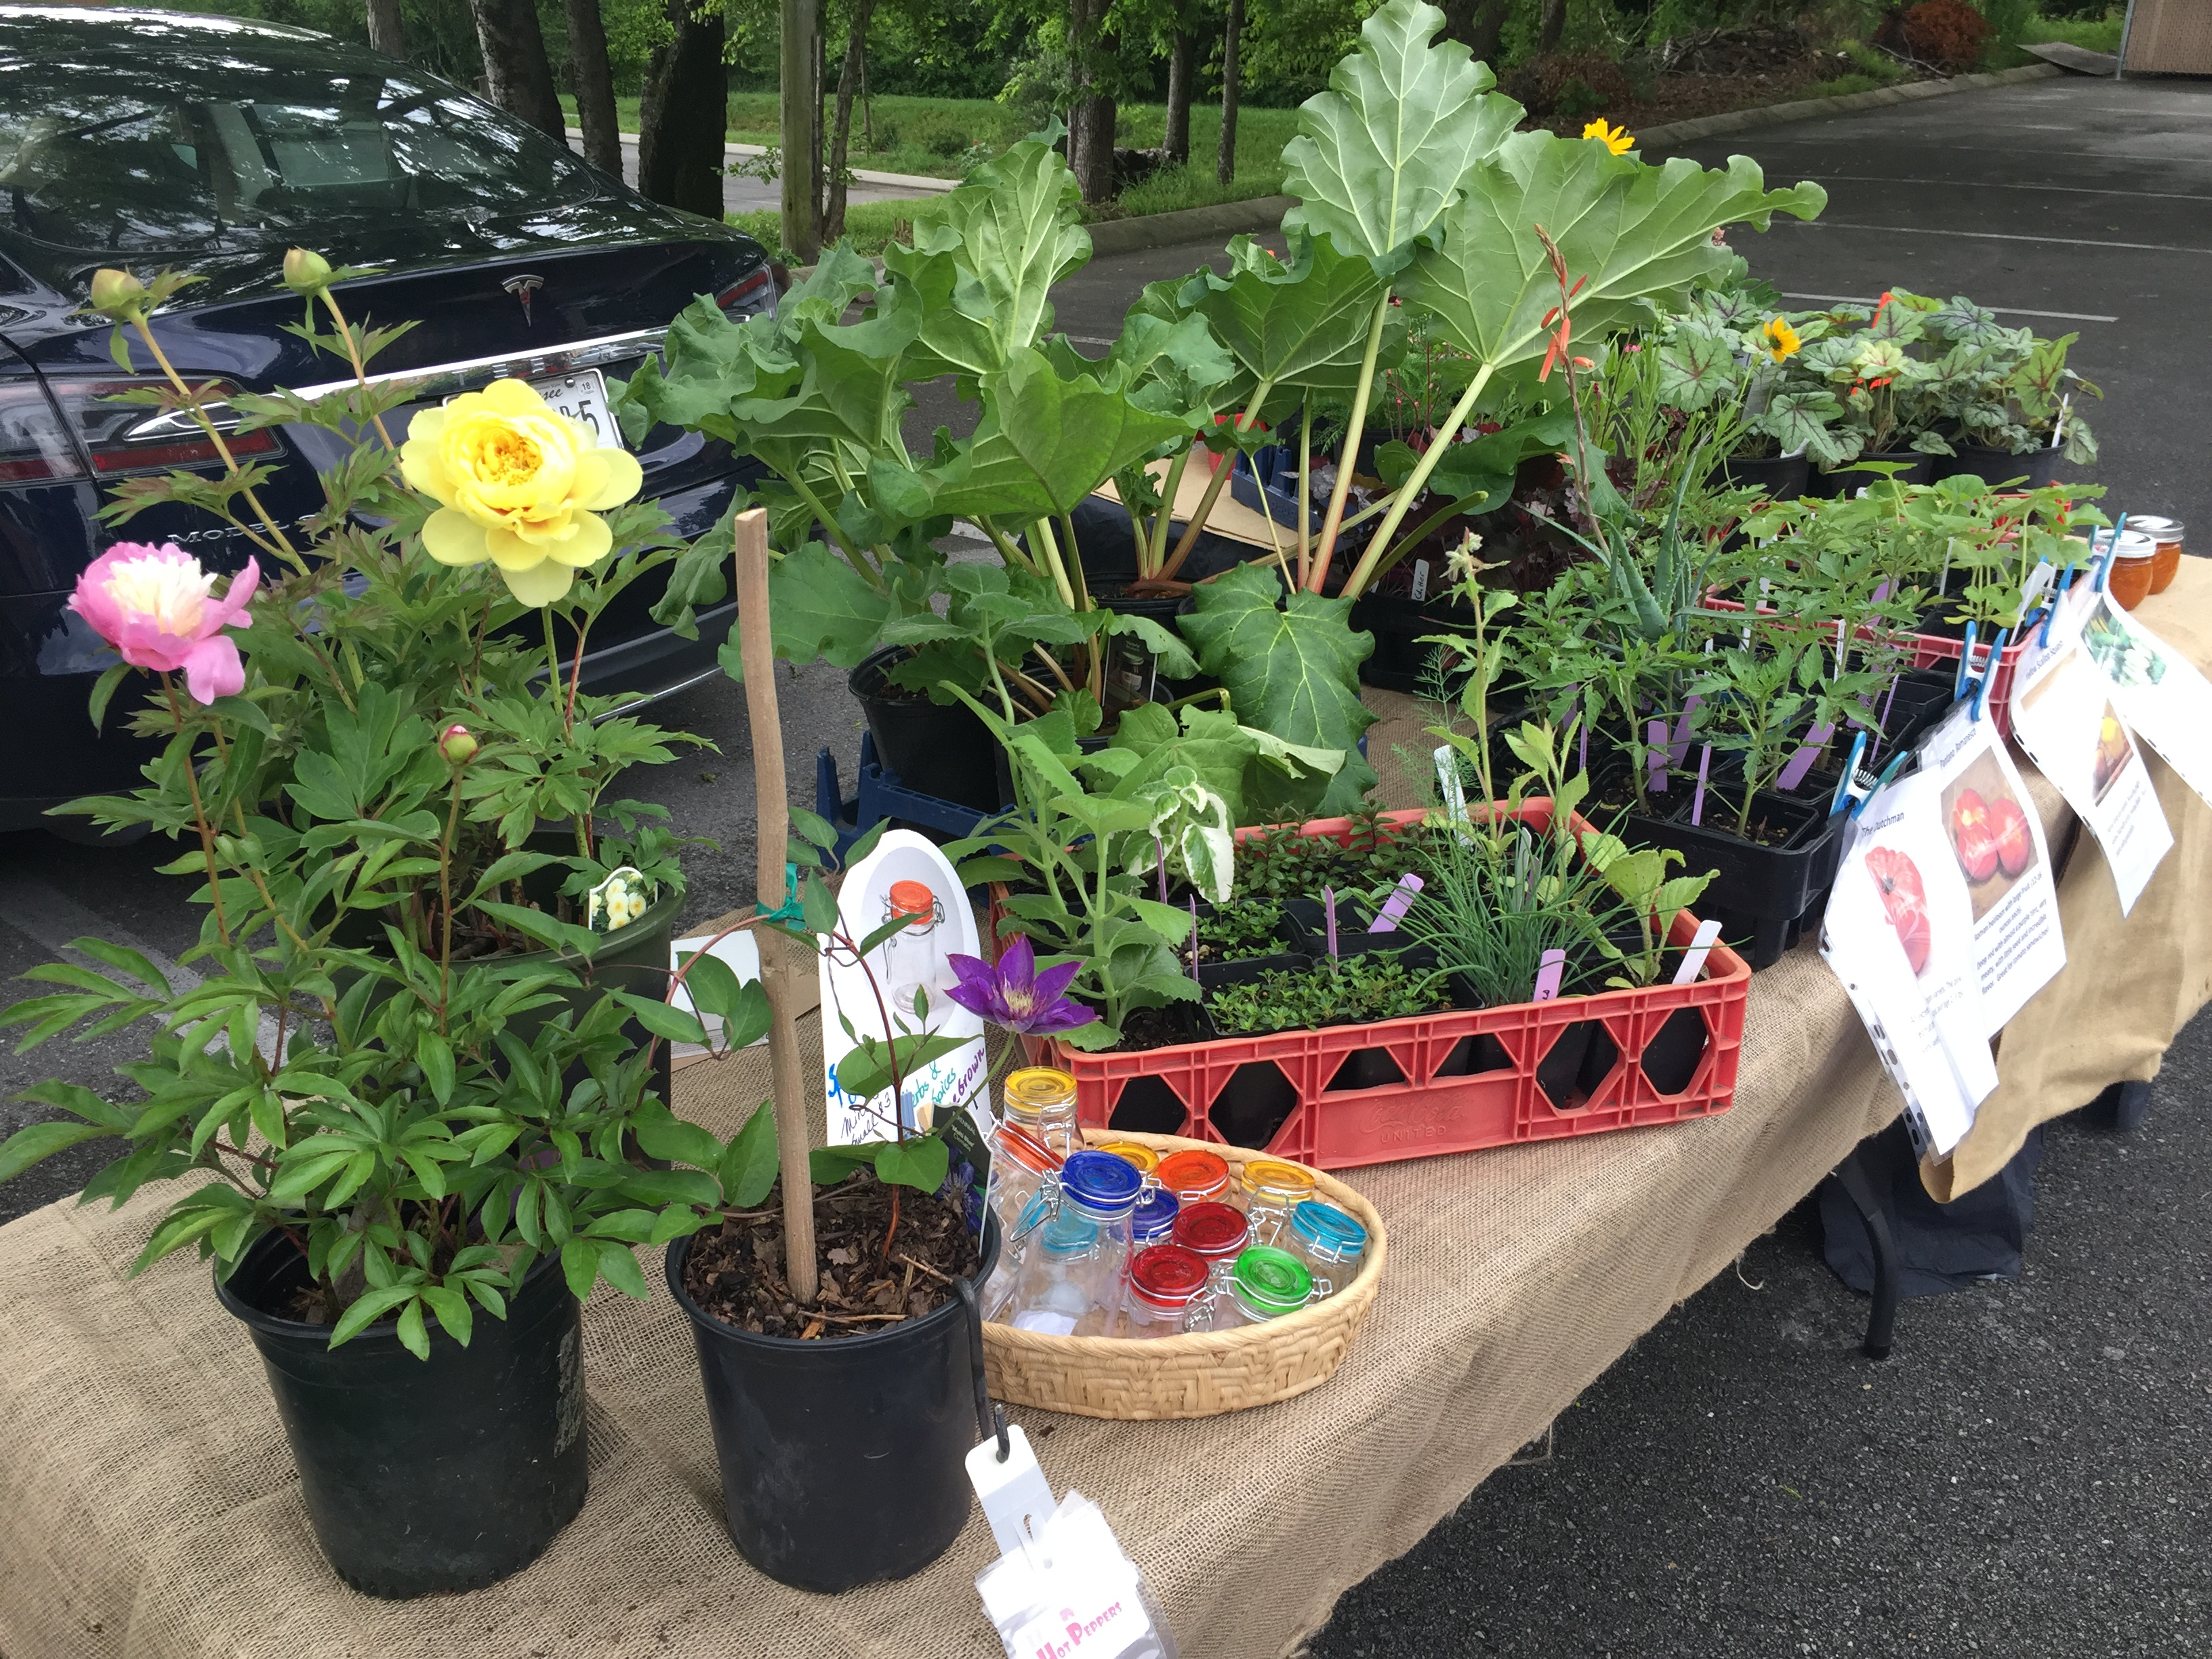 Our Farmers market booth